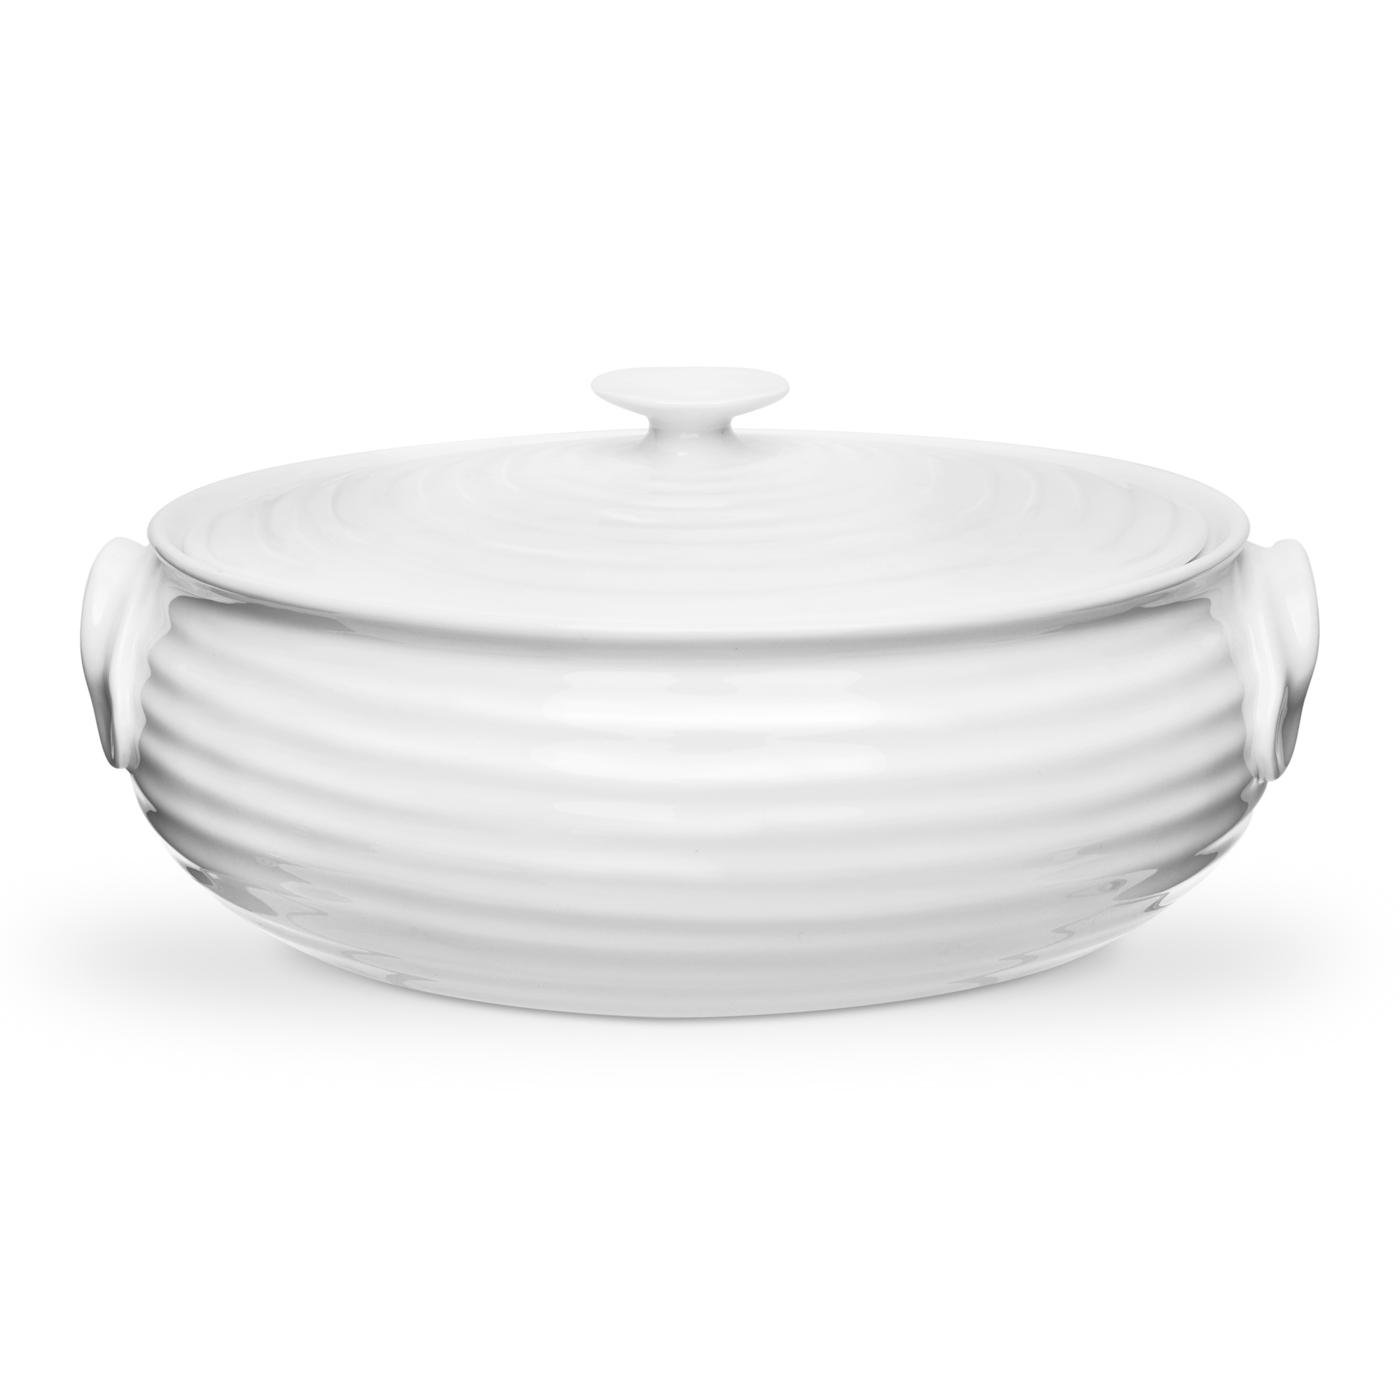 Portmeirion Sophie Conran White Oval Casserole, Small Portmeirion USA 491854